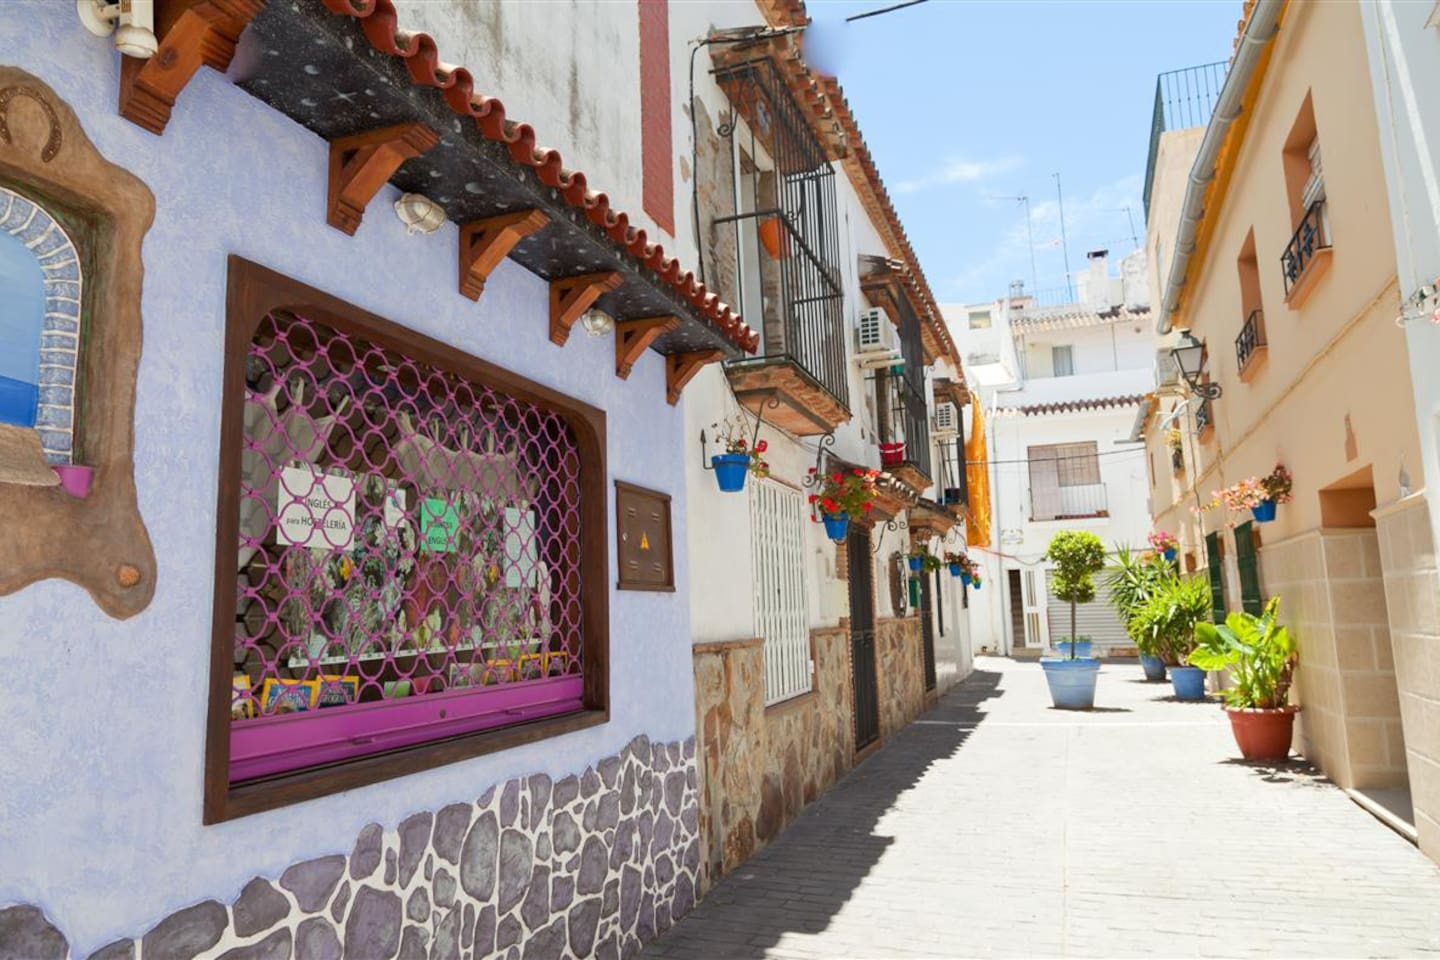 Calle Flores - the entrance to this upstairs apartment